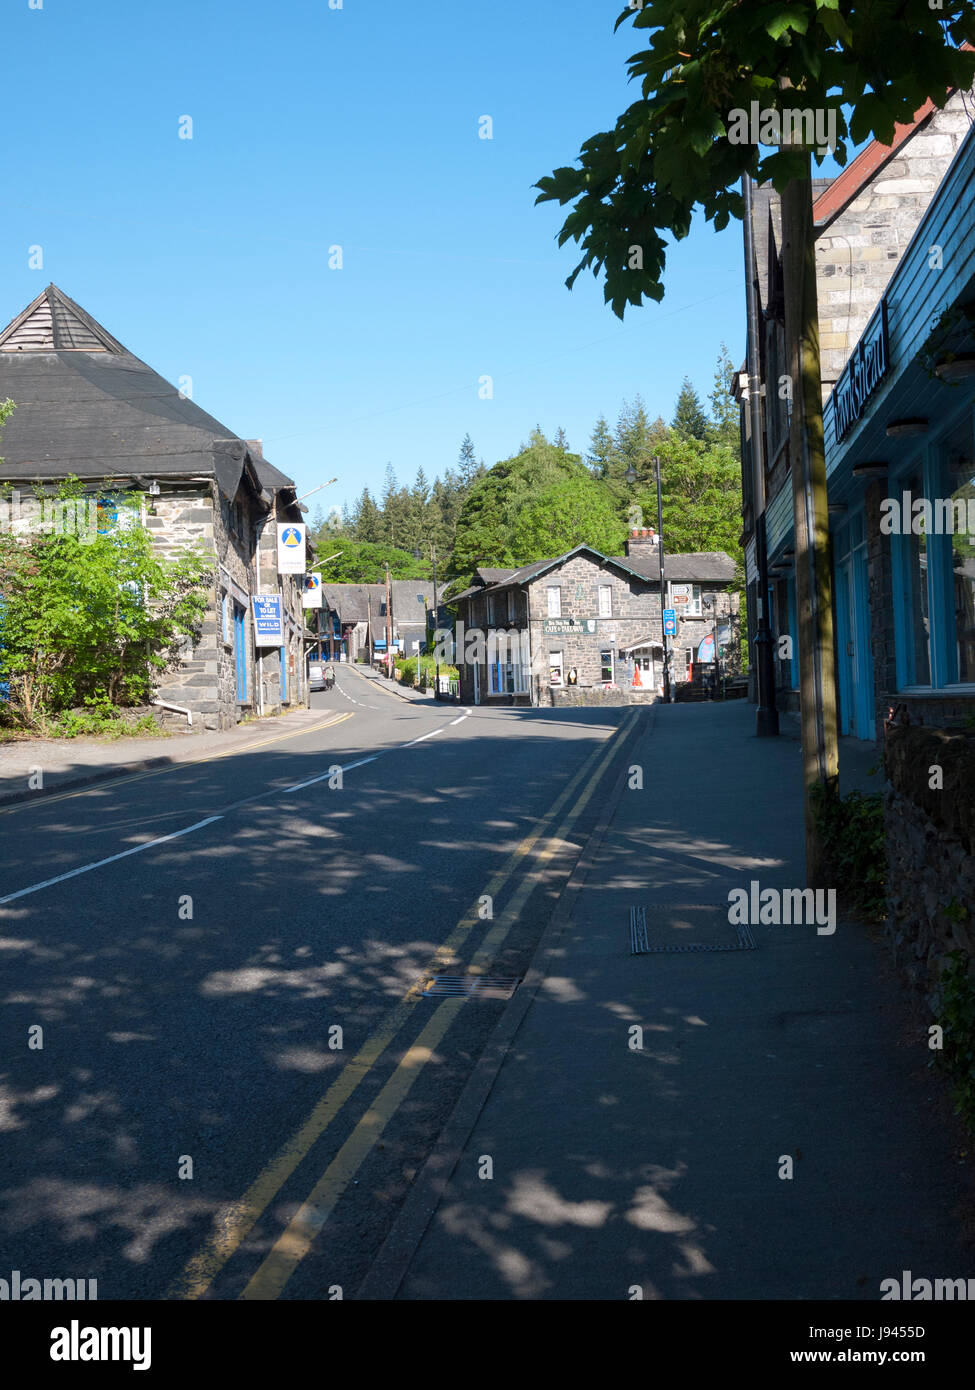 The A5 heading up through Betws-y-coed, North Wales, UK. - Stock Image